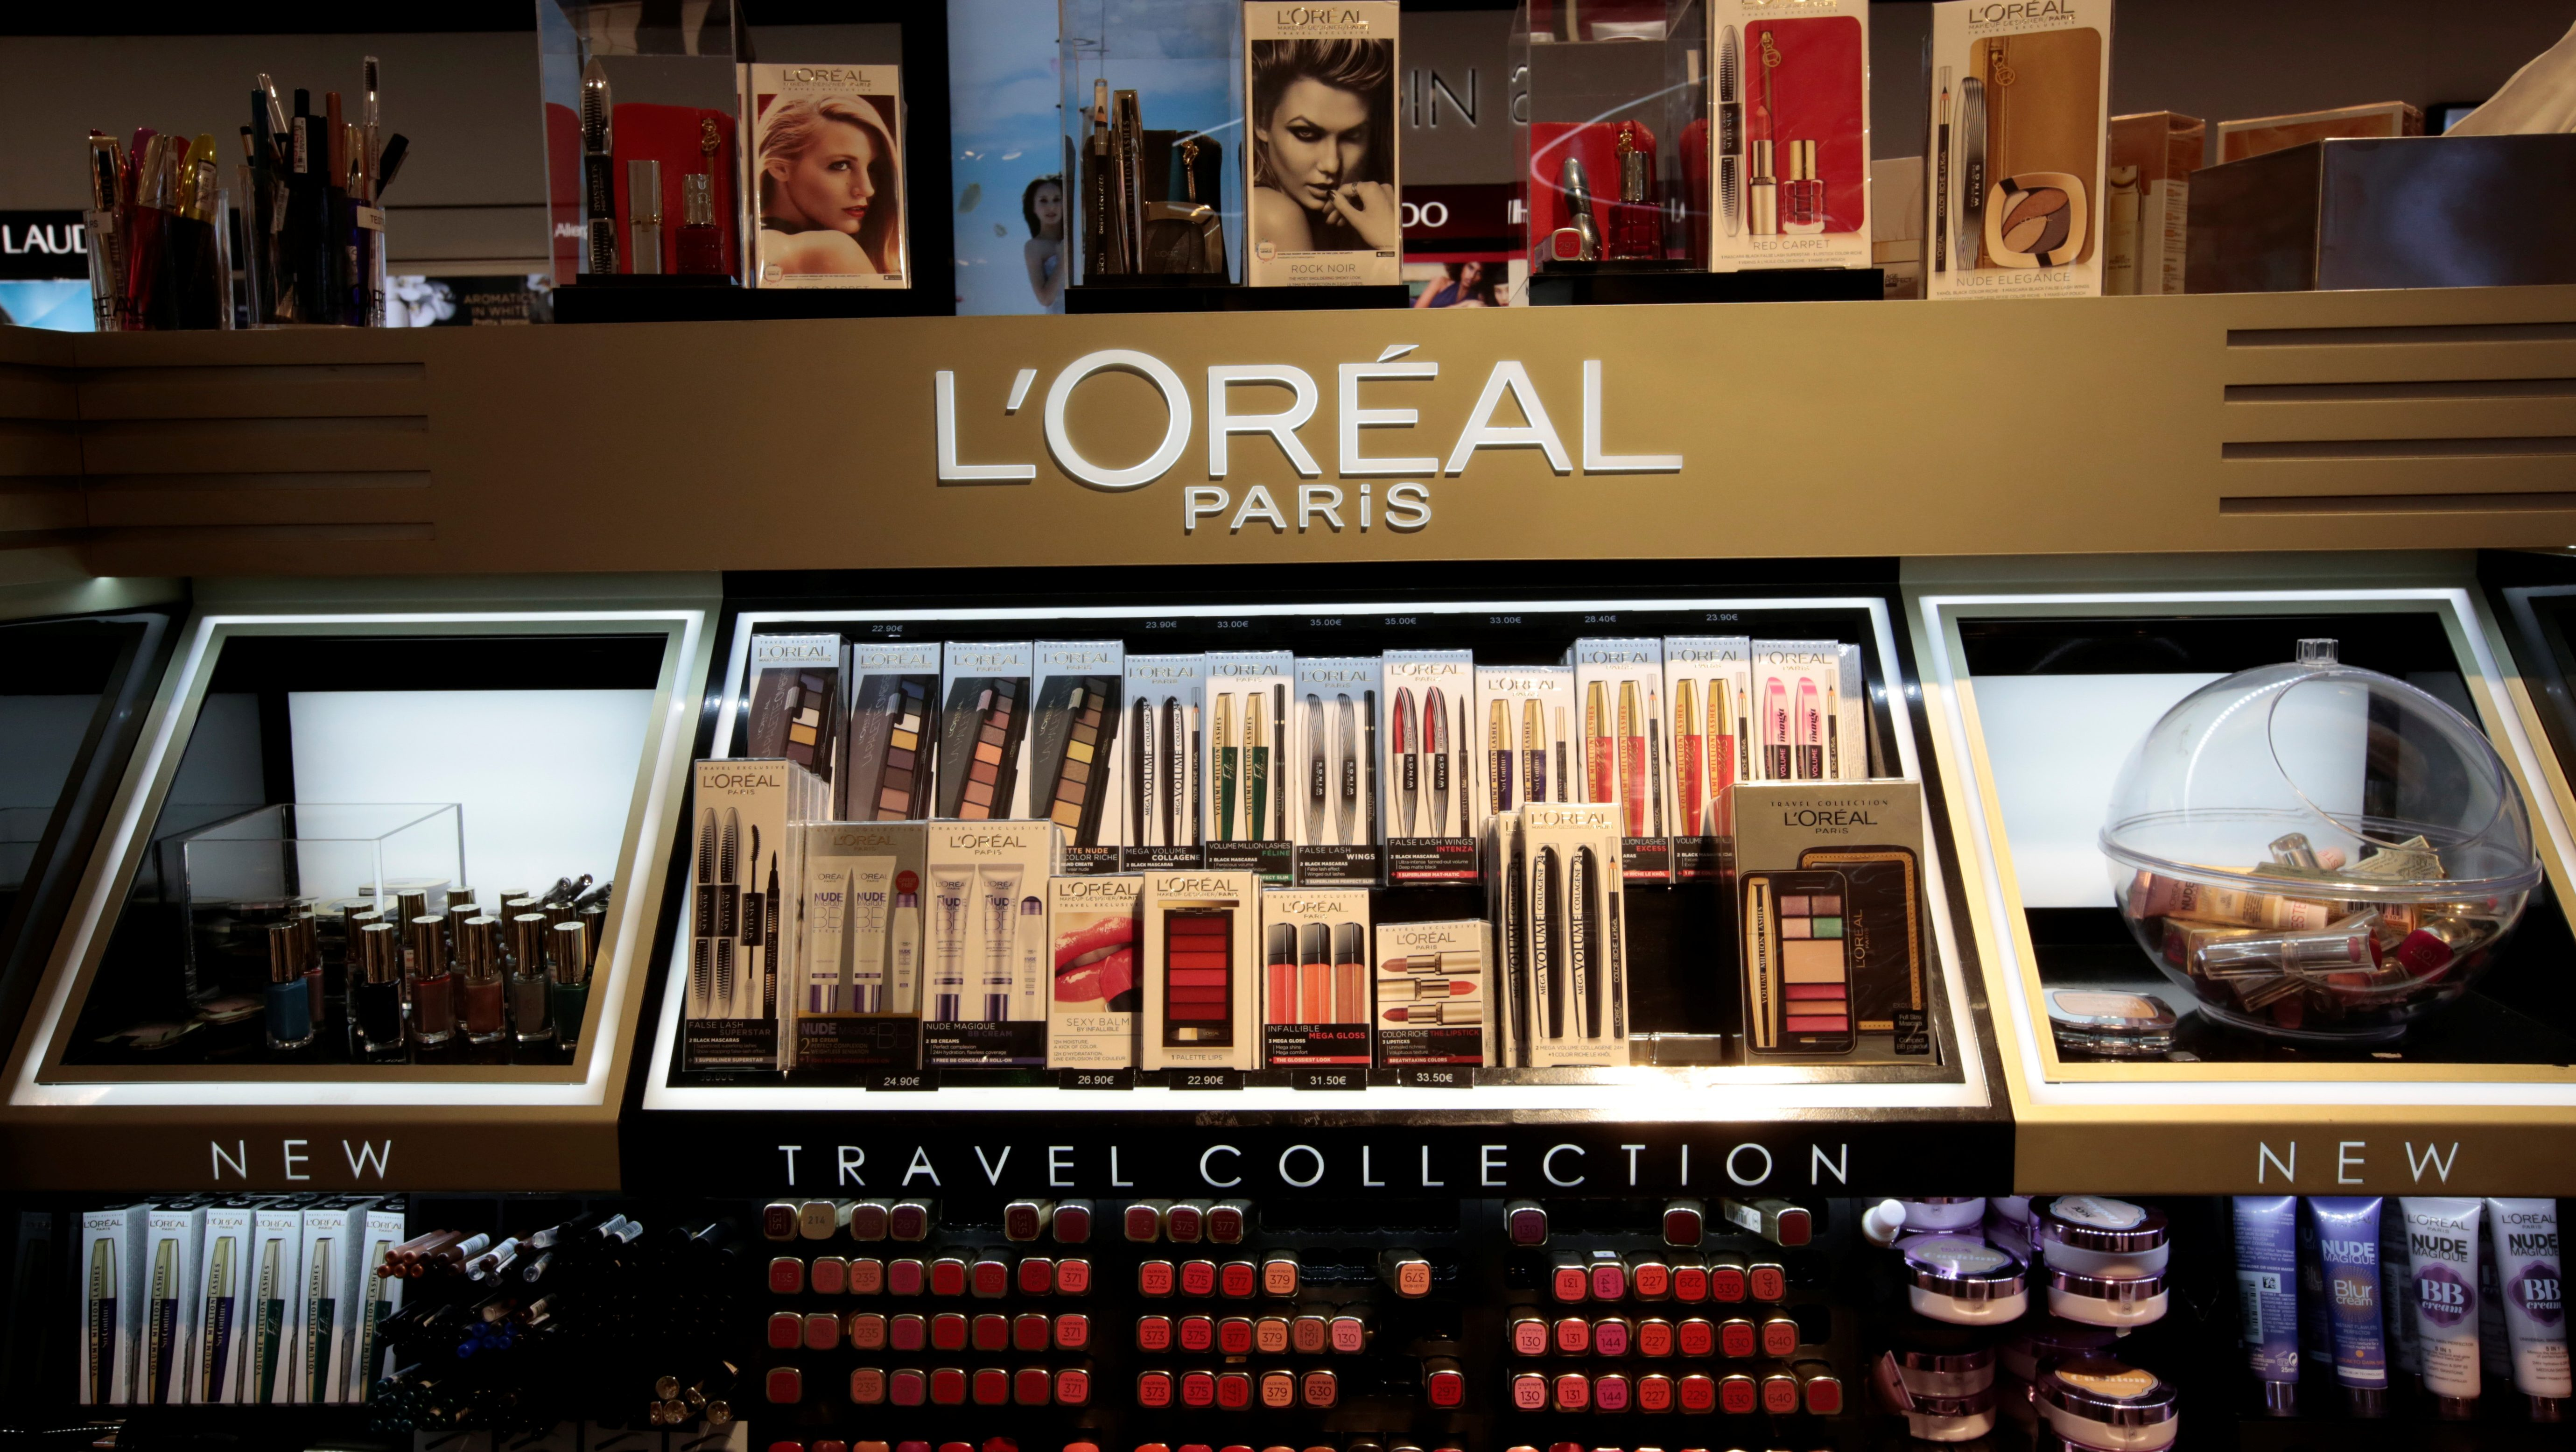 A cosmetic display of French cosmetics group L'Oreal is seen during the inauguration of the commercial zone at the Nice international airport Terminal 1 in Nice, France, June 10, 2016.